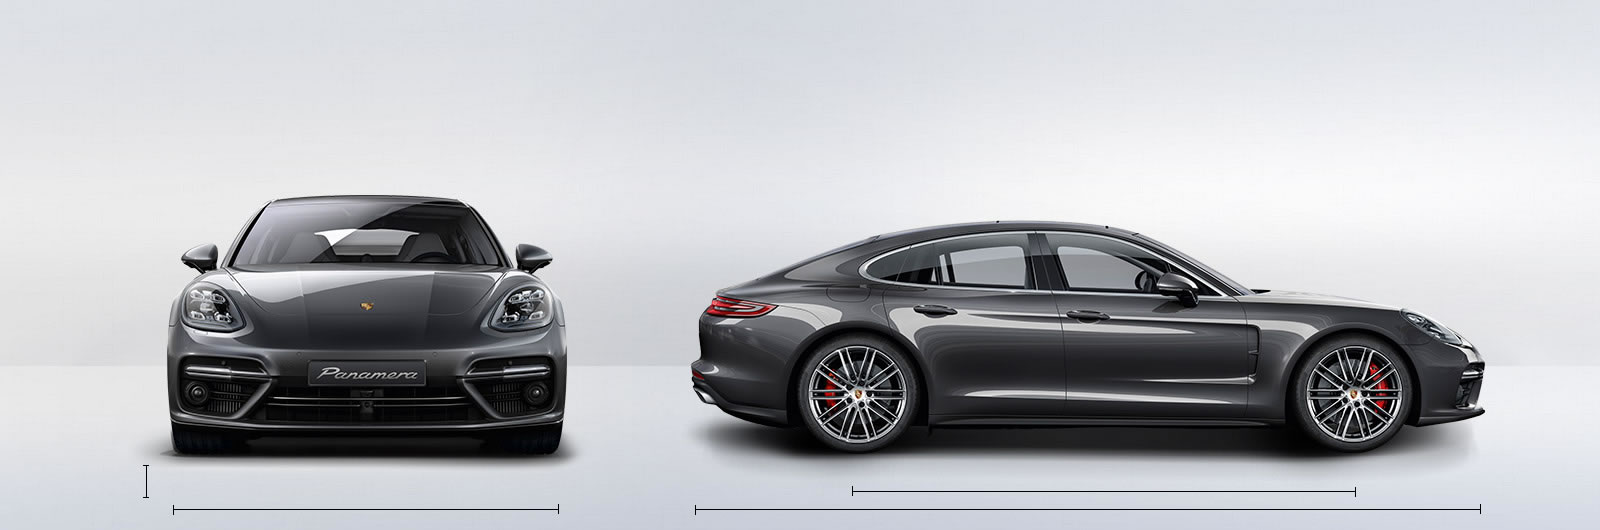 Panamera Turbo Specifications